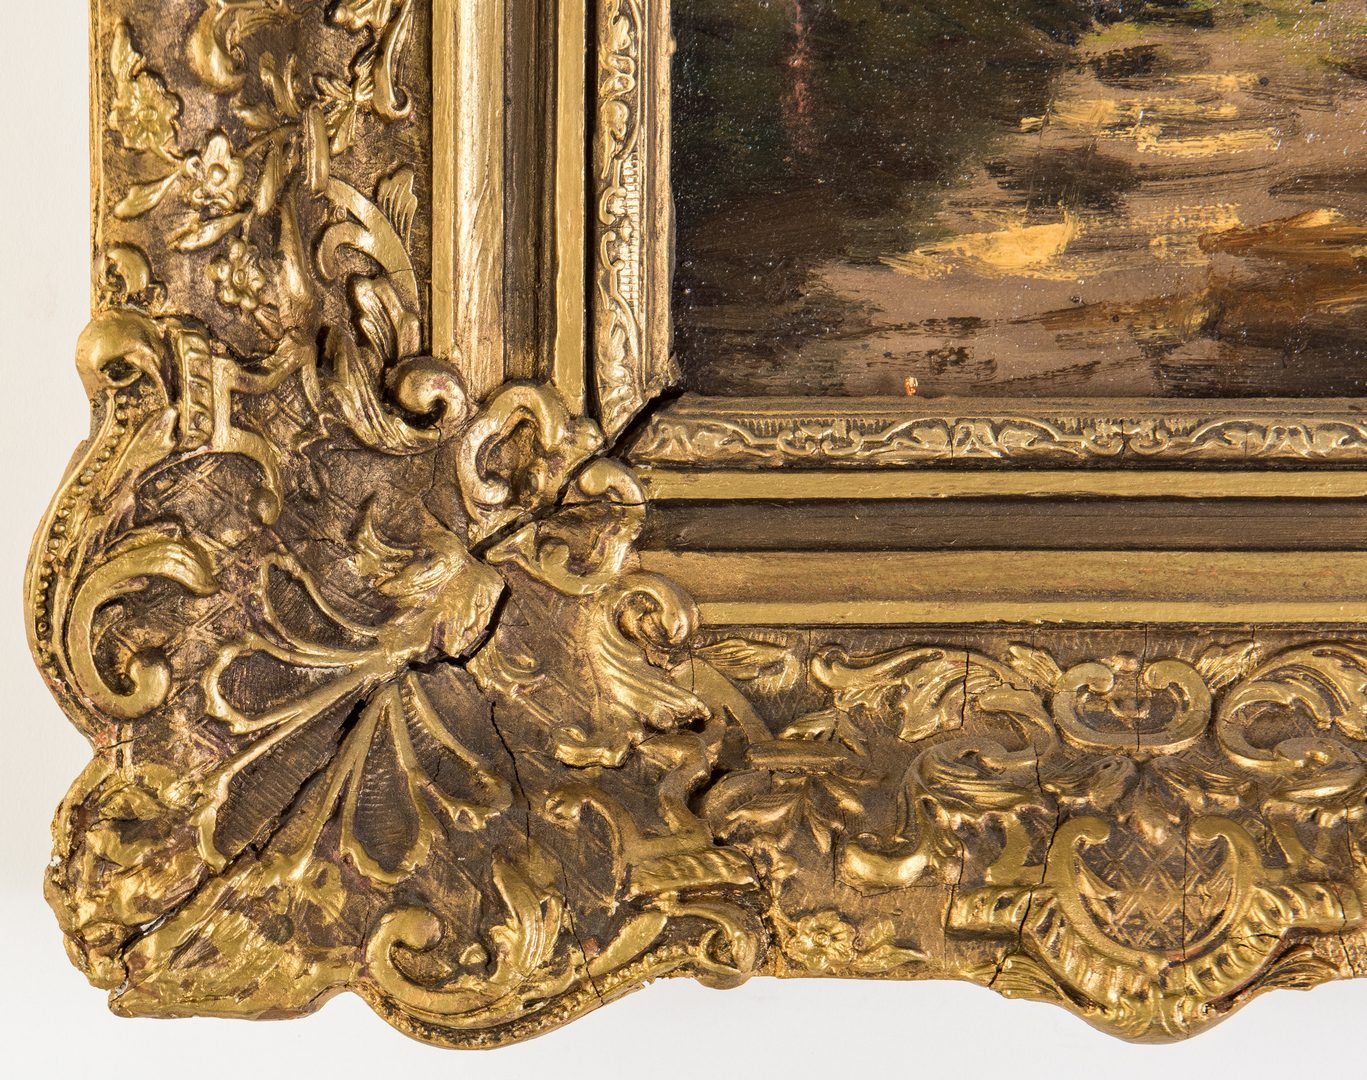 Lot 68: Continental School, 19th century Landscape in antique frame